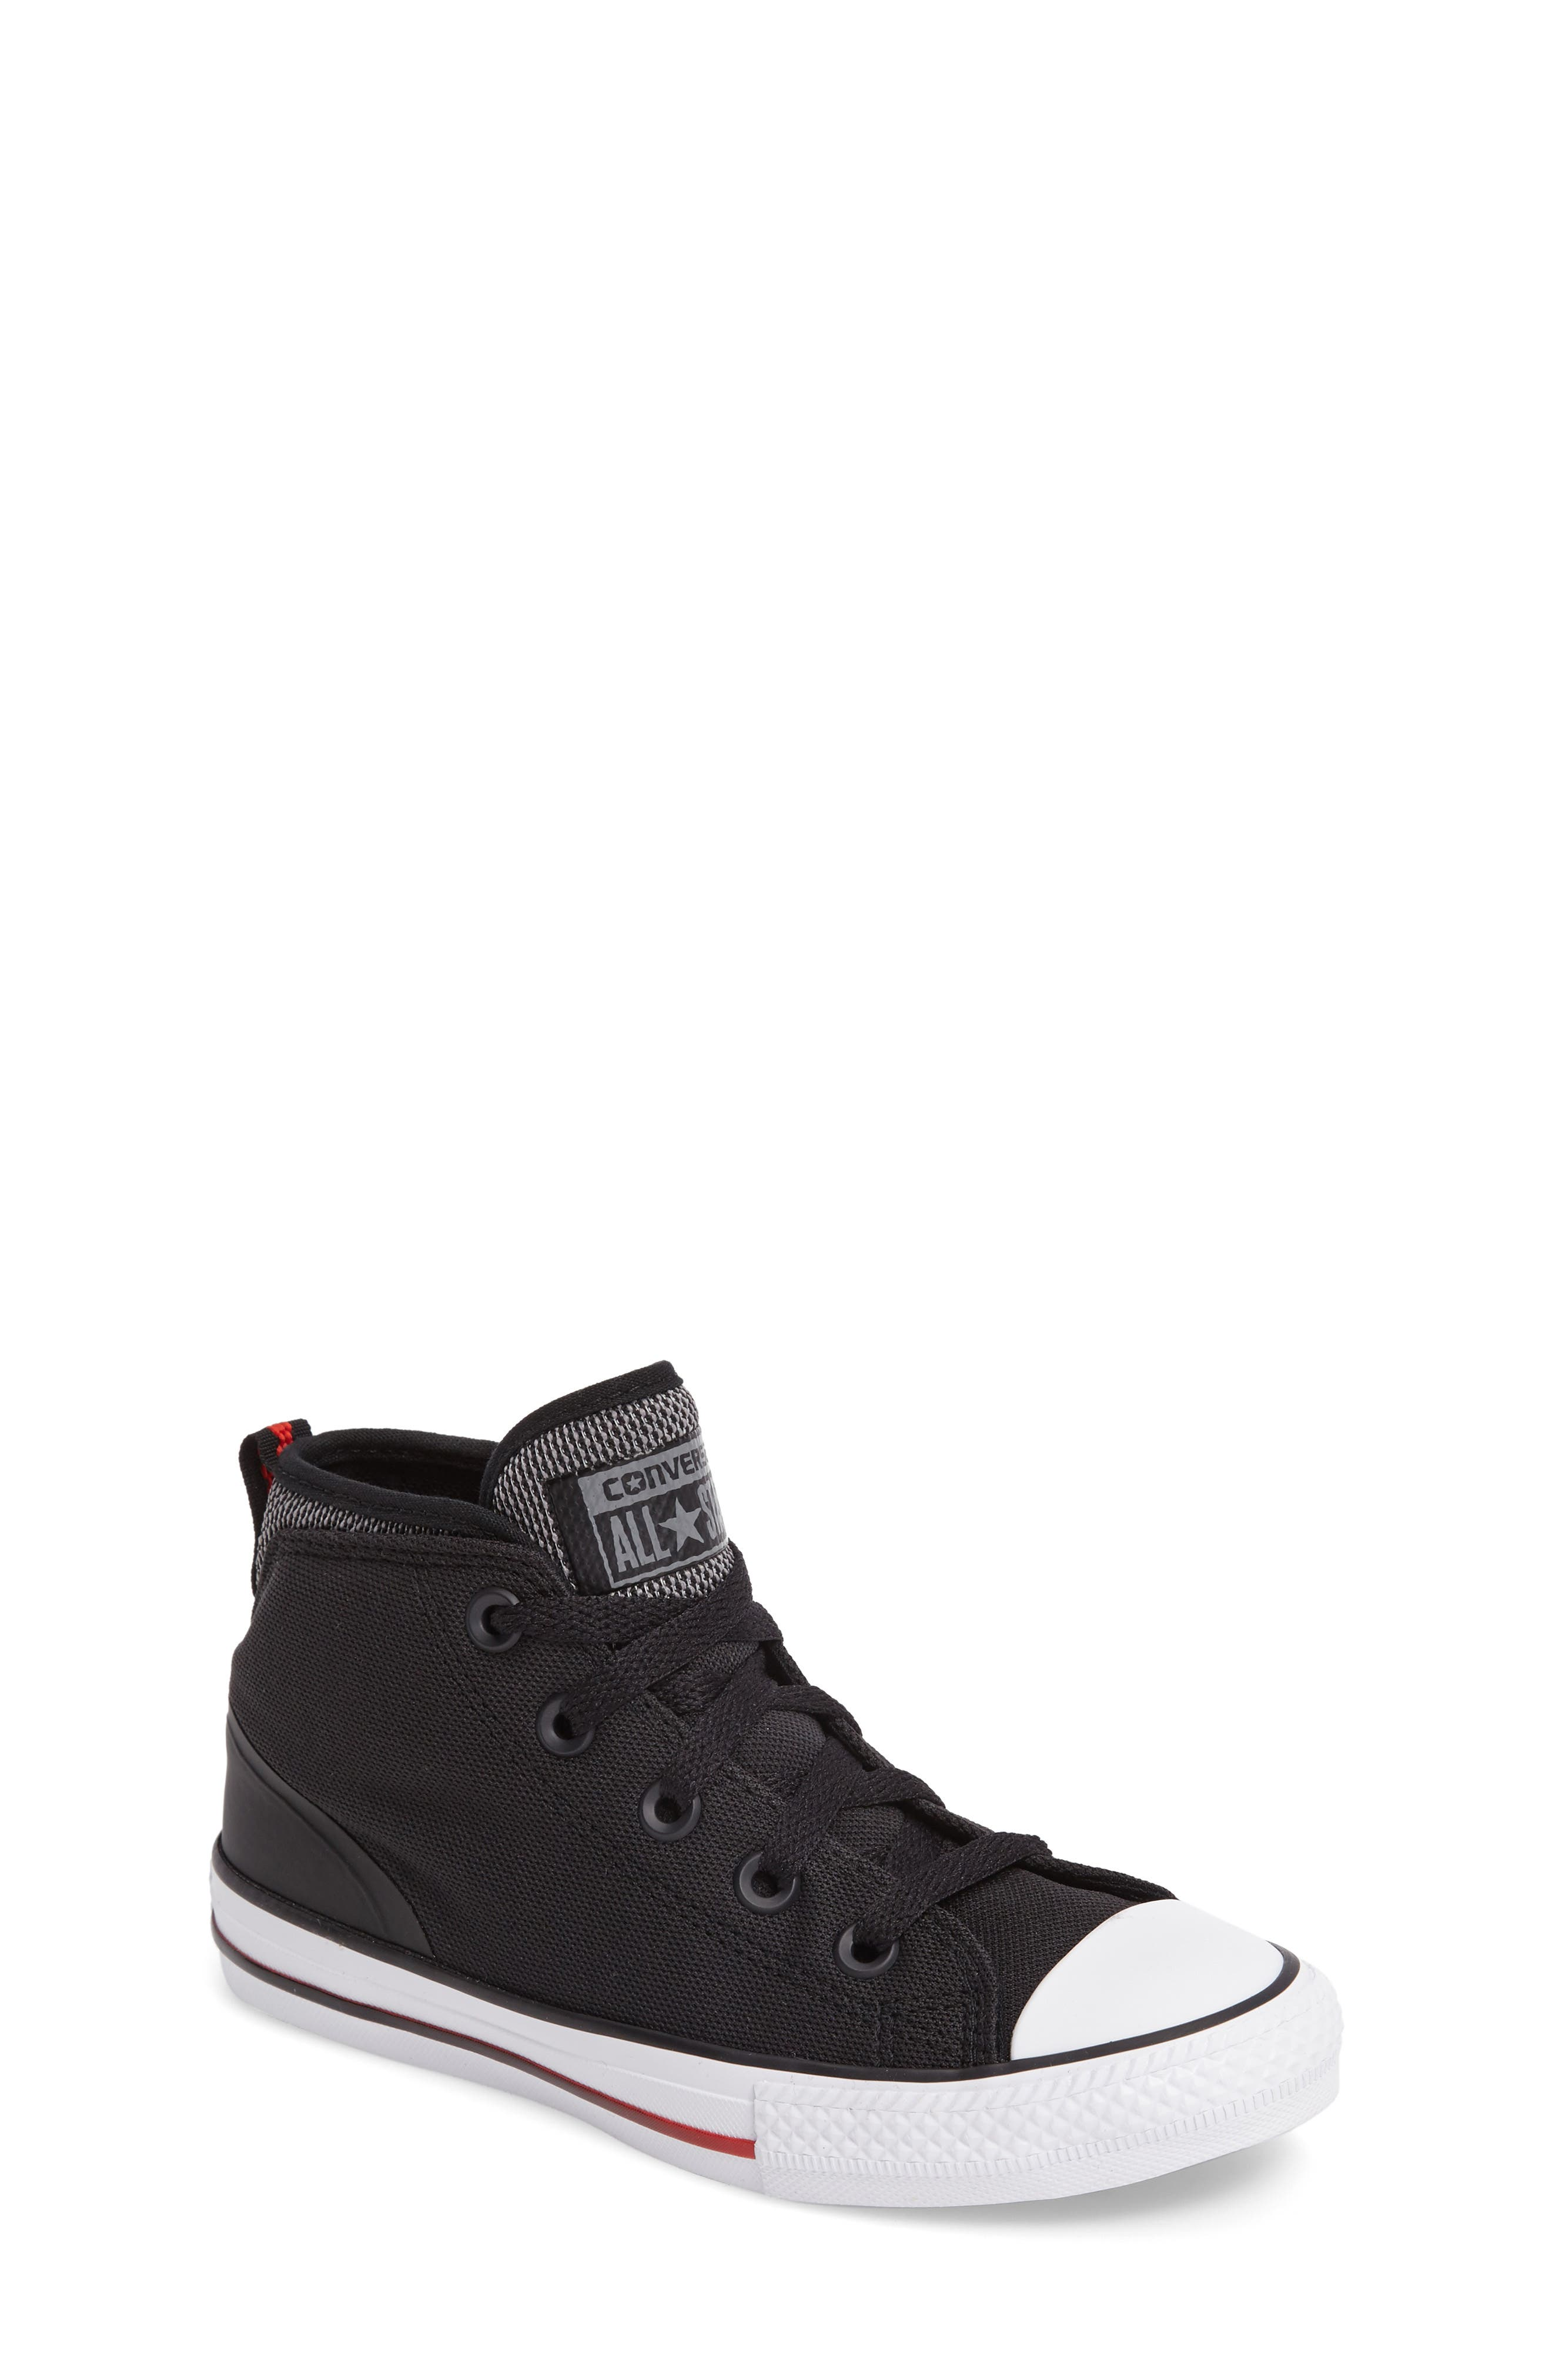 Chuck Taylor<sup>®</sup> All Star<sup>®</sup> Syde Street High Top Sneaker,                             Main thumbnail 2, color,